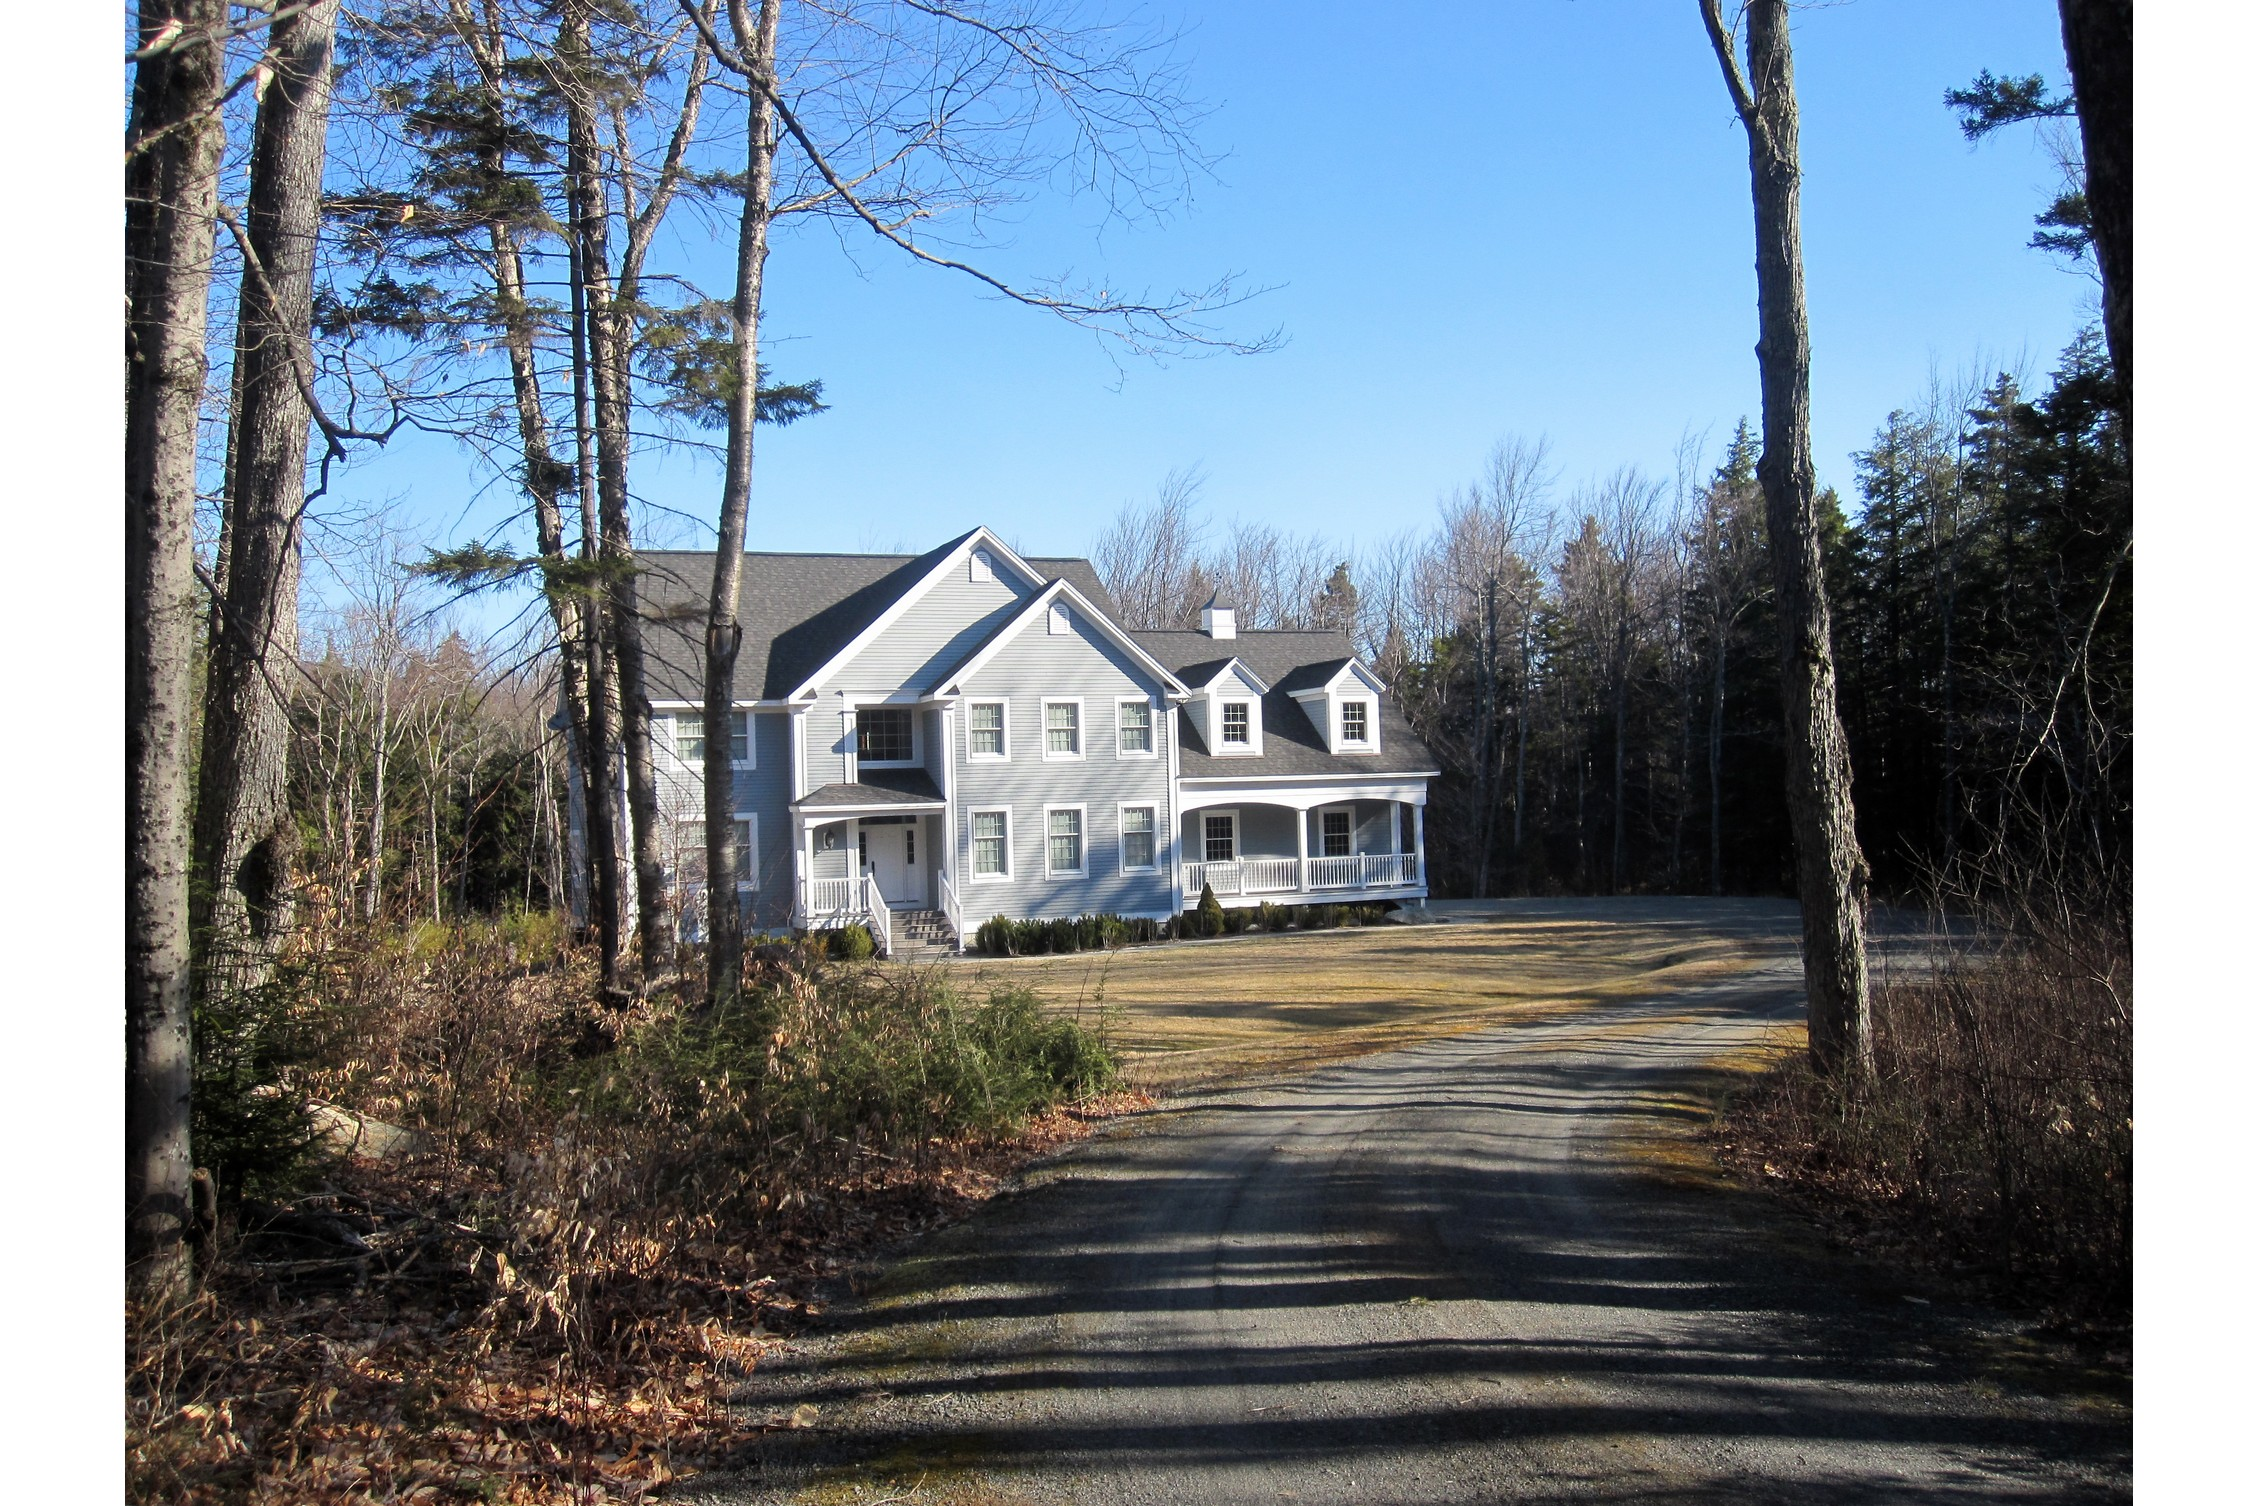 Single Family Home for Sale at Inviting Stratton Home 152 Willis Cemetery Rd Stratton, Vermont, 05360 United States